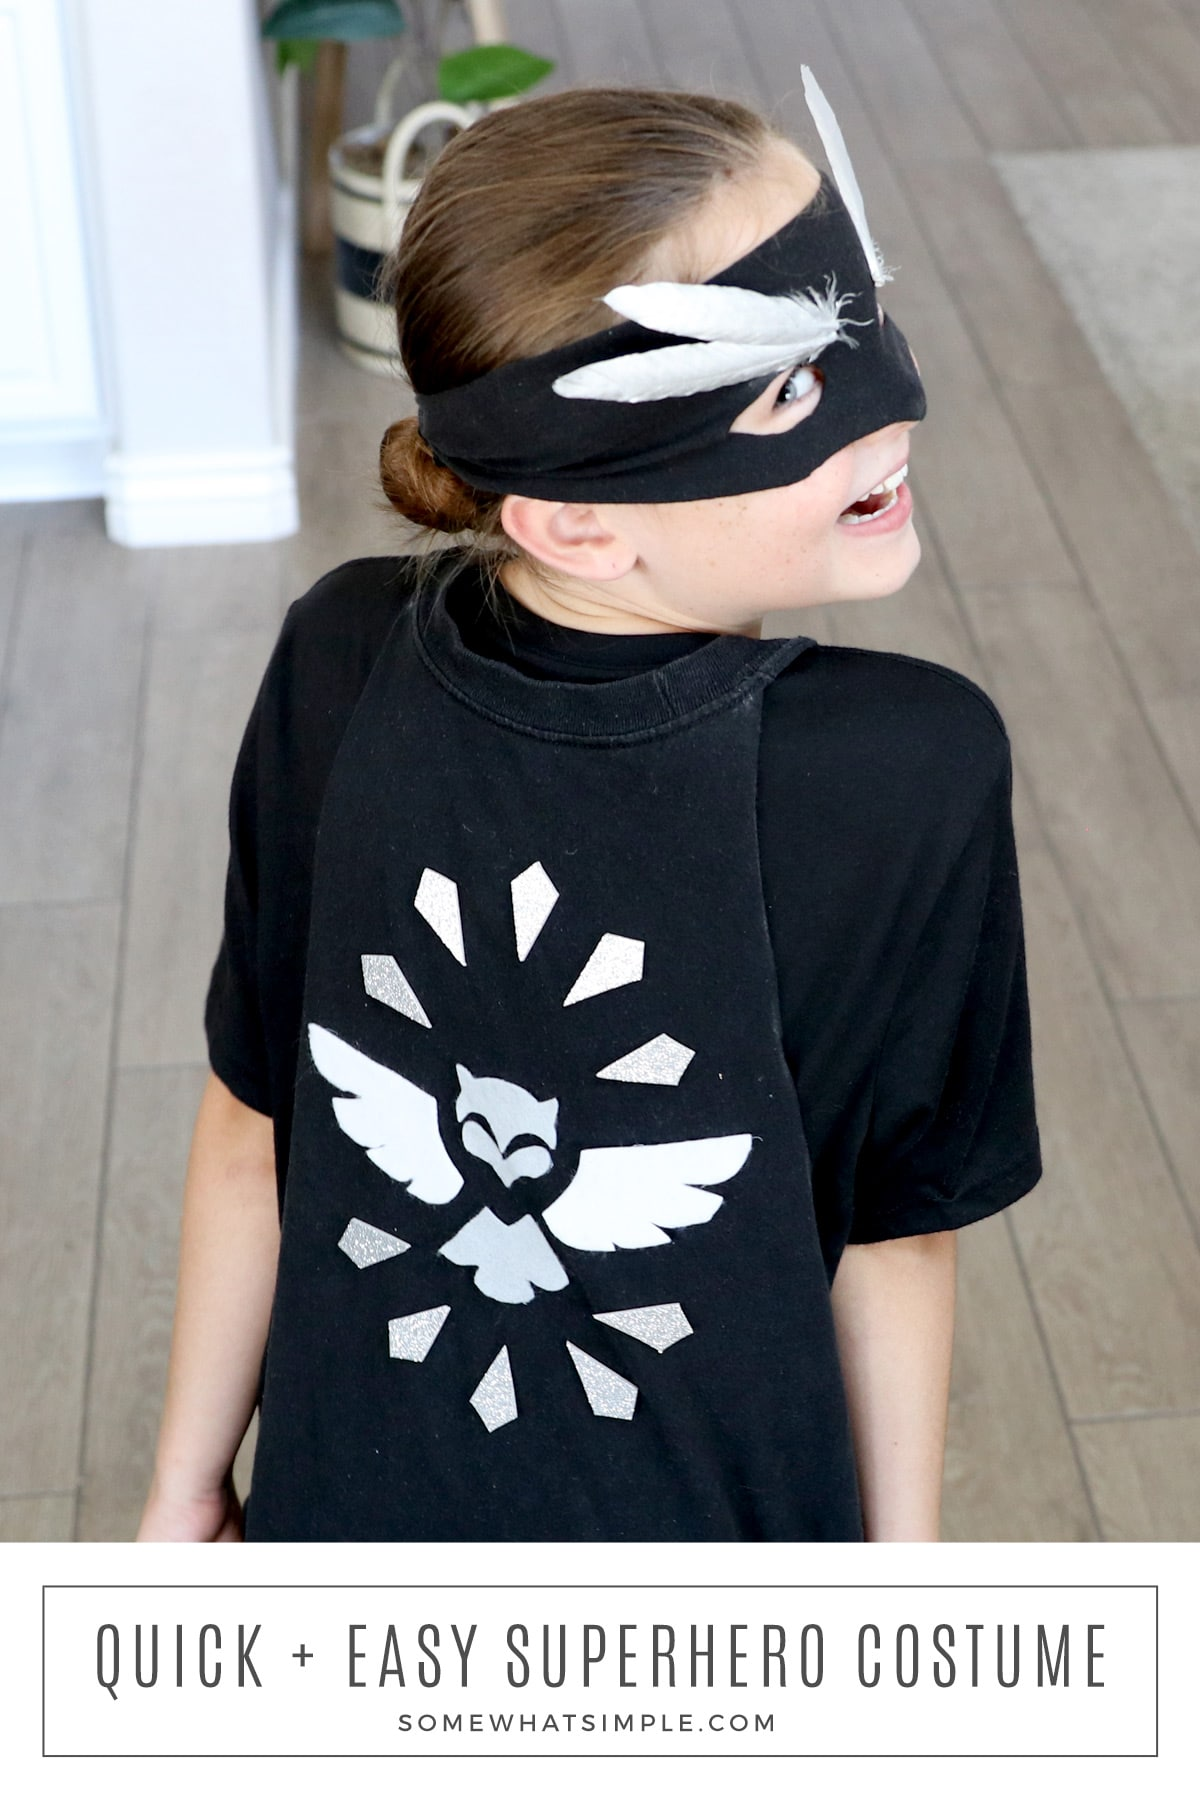 Get ready to save the world with a simple no-sew Kids Superhero Costume! This easy idea can be made in just minutes! via @somewhatsimple